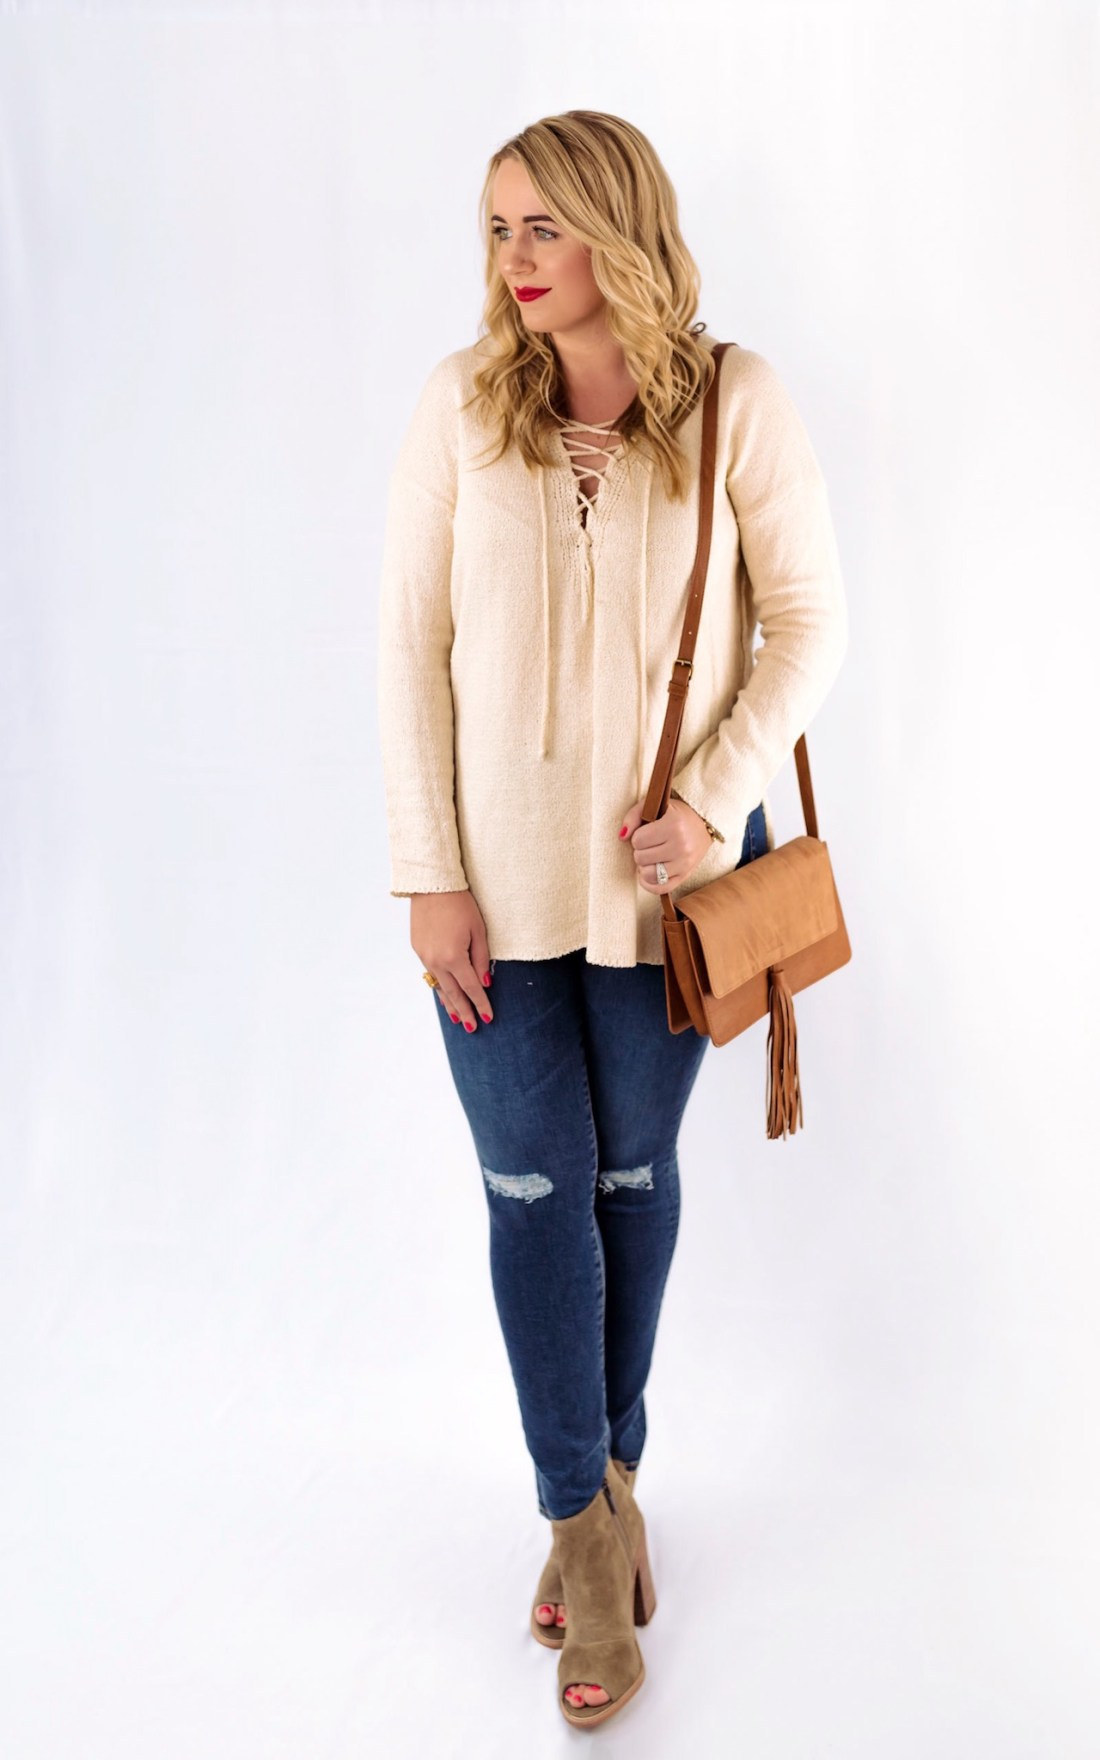 ASTR Lace Up Sweater Nordstrom Sale Fancy Things